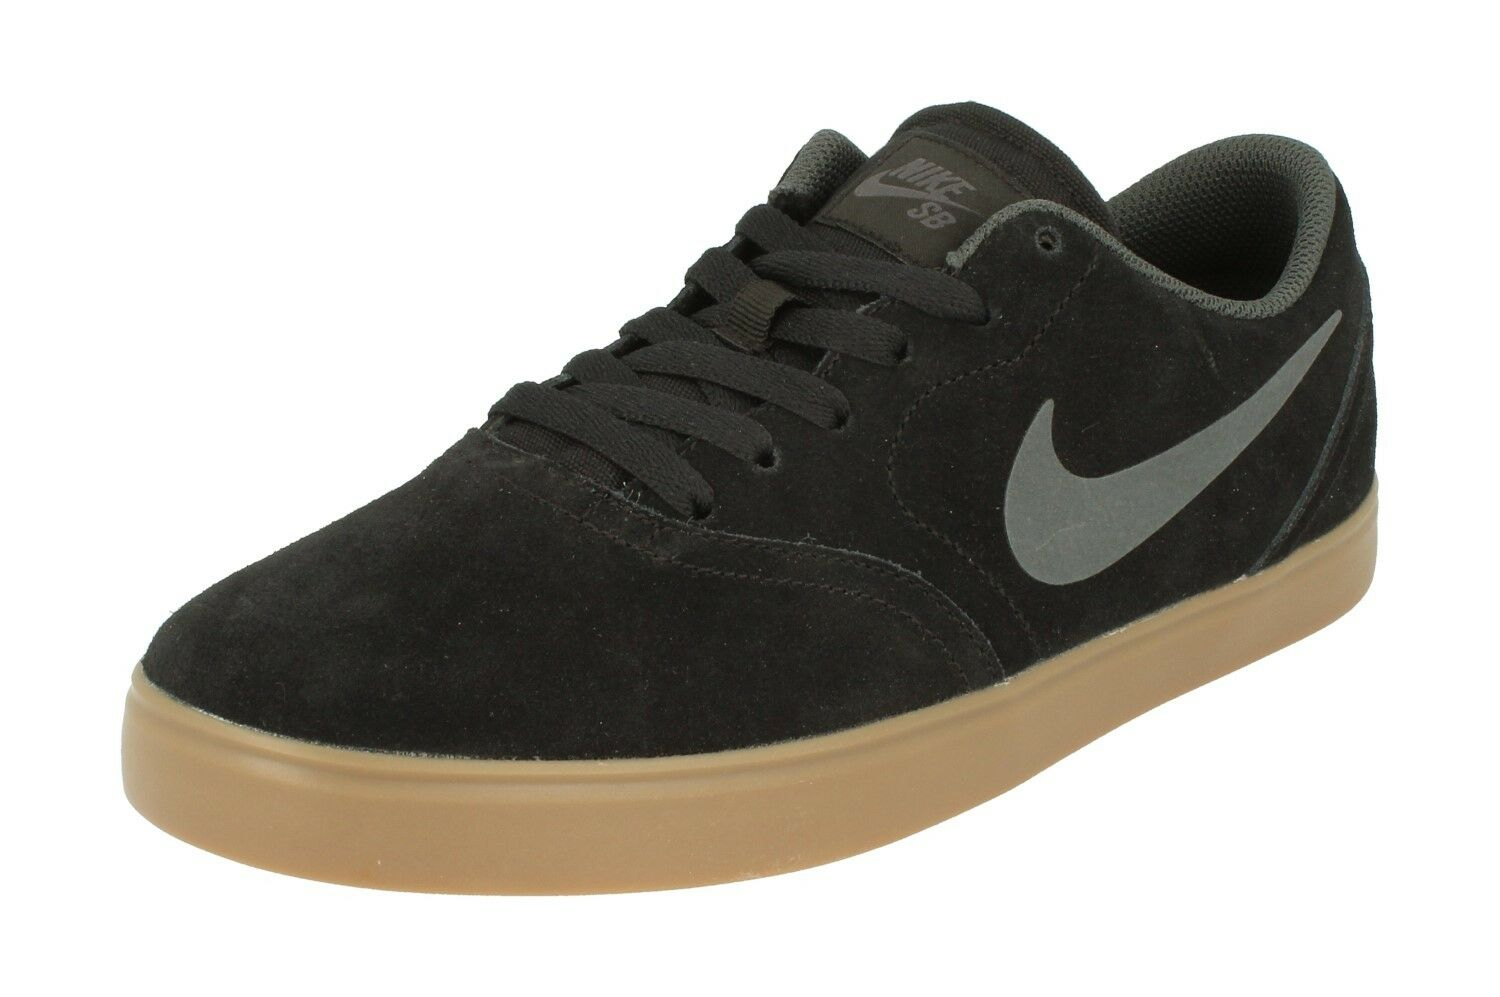 Nike Sb Baskets Carreaux Hommes Baskets Sb 705265 Baskets 003 78ded3